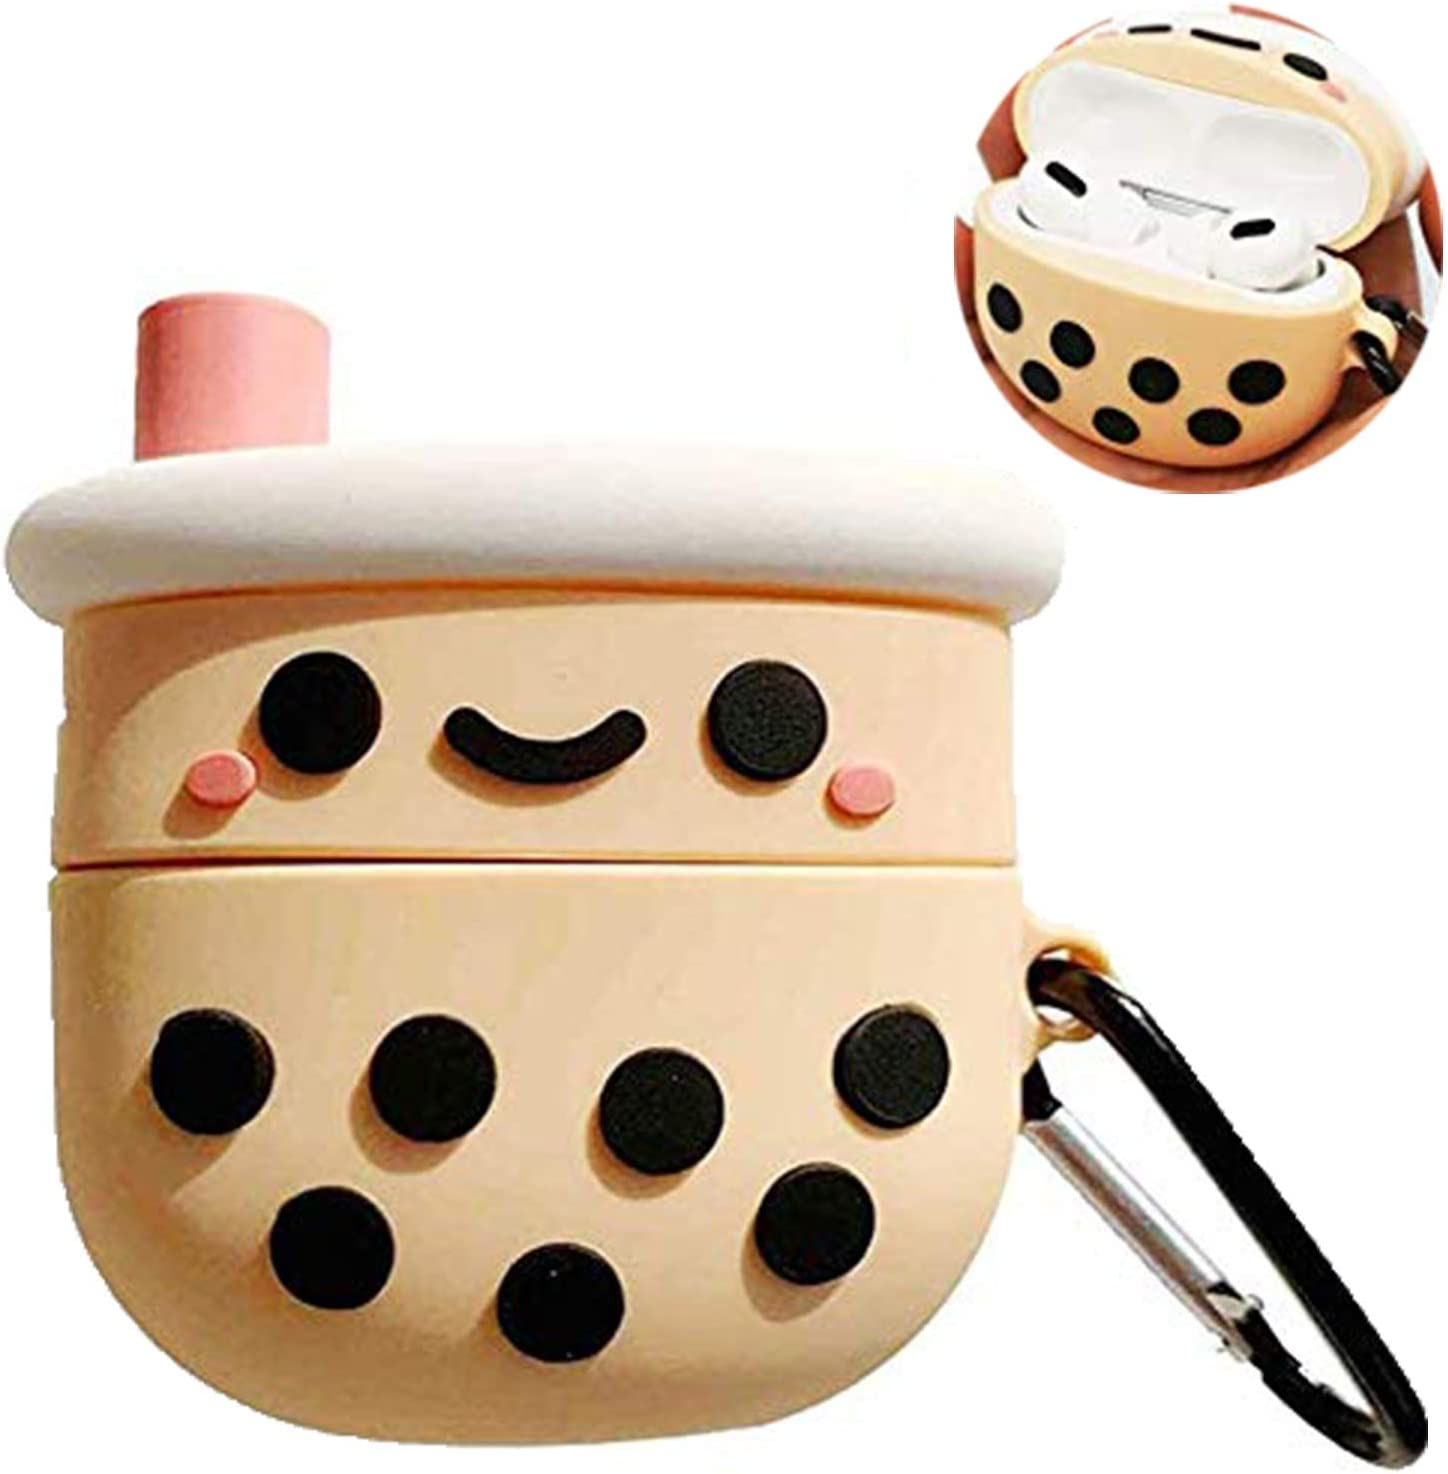 Handmade Case Nice Gift For Her  Him With Keychain For AirPods 1/&2 And Airpods Pro Cute Morandi Cat Design Soft Silicone Protective Case